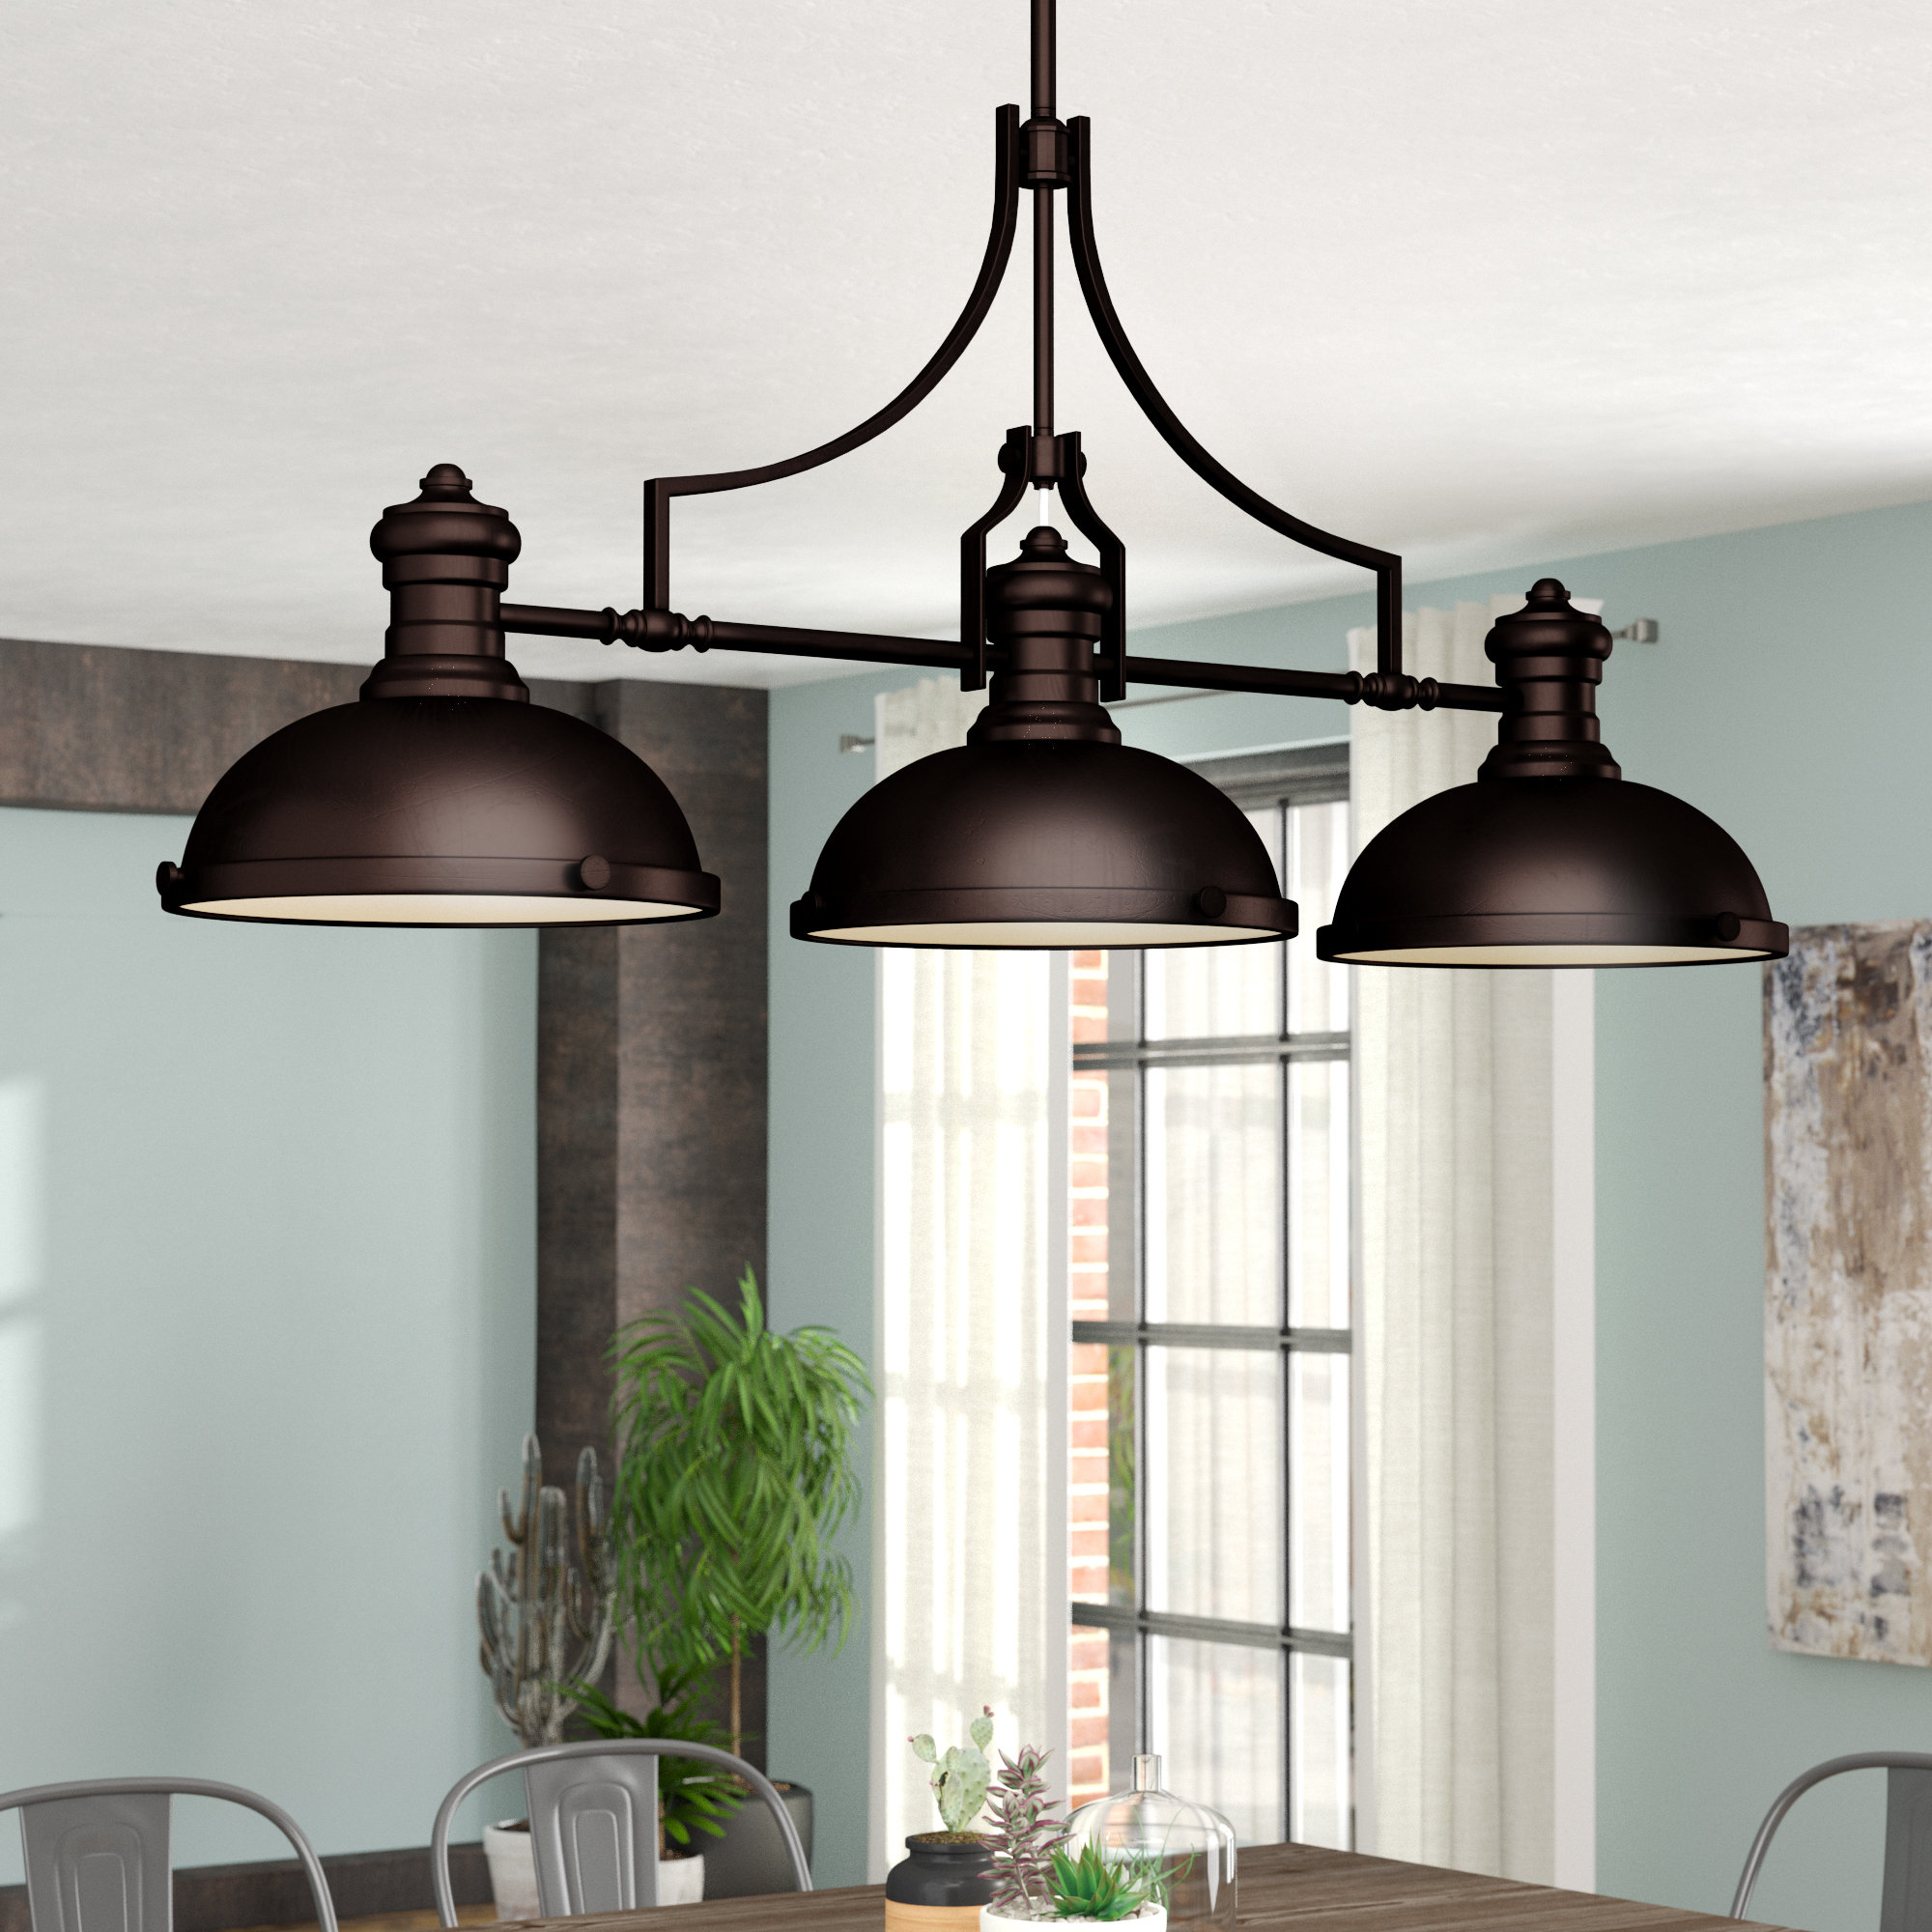 Widely Used Ariel 3 Light Kitchen Island Dome Pendants Intended For Trent Austin Design Fredela 3 Light Kitchen Island Pendant (View 25 of 25)